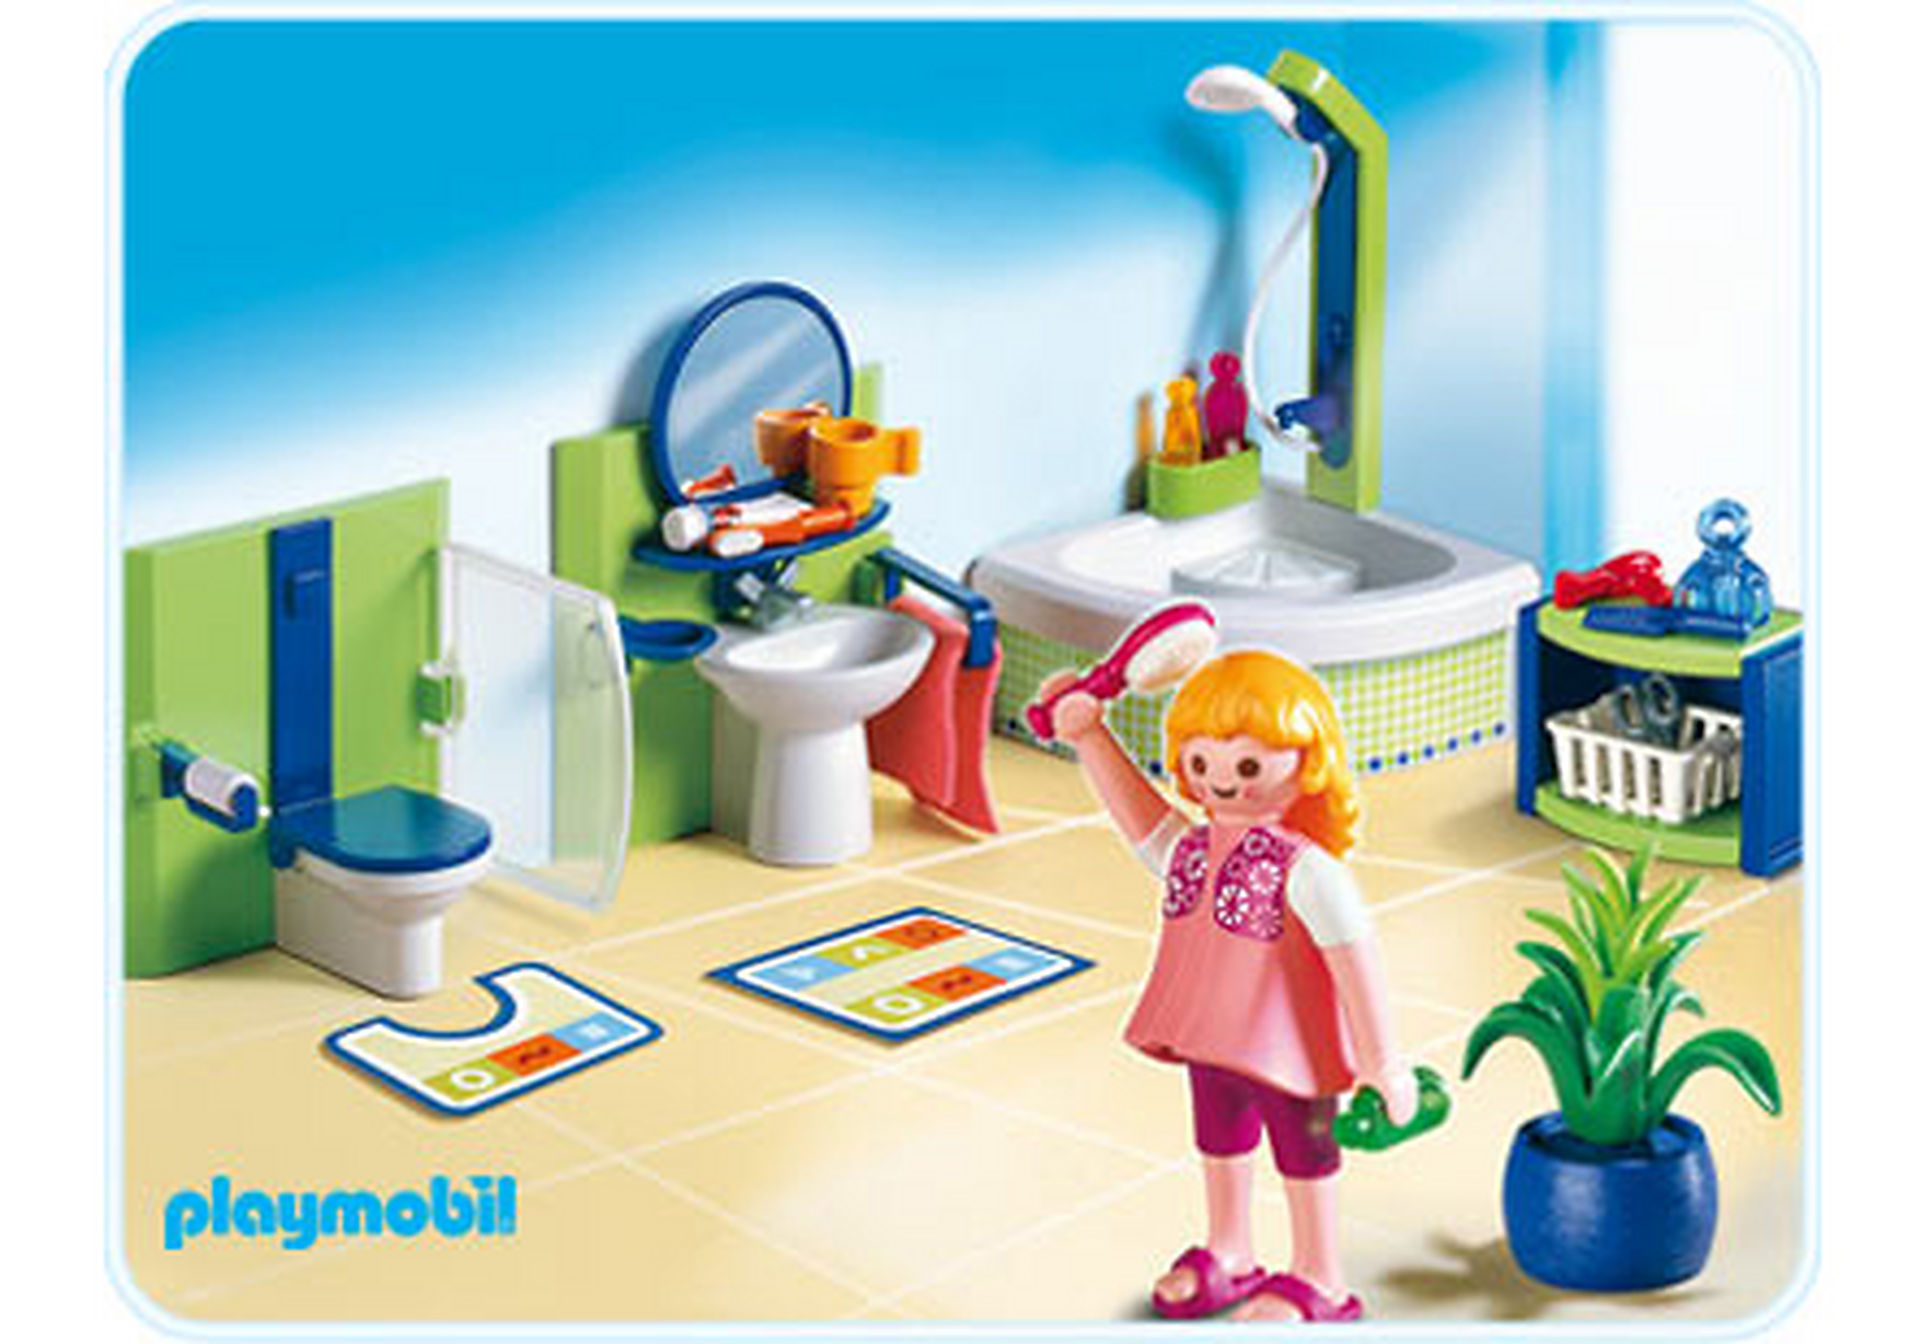 http://media.playmobil.com/i/playmobil/4285-A_product_detail/Bad mit Eckwanne